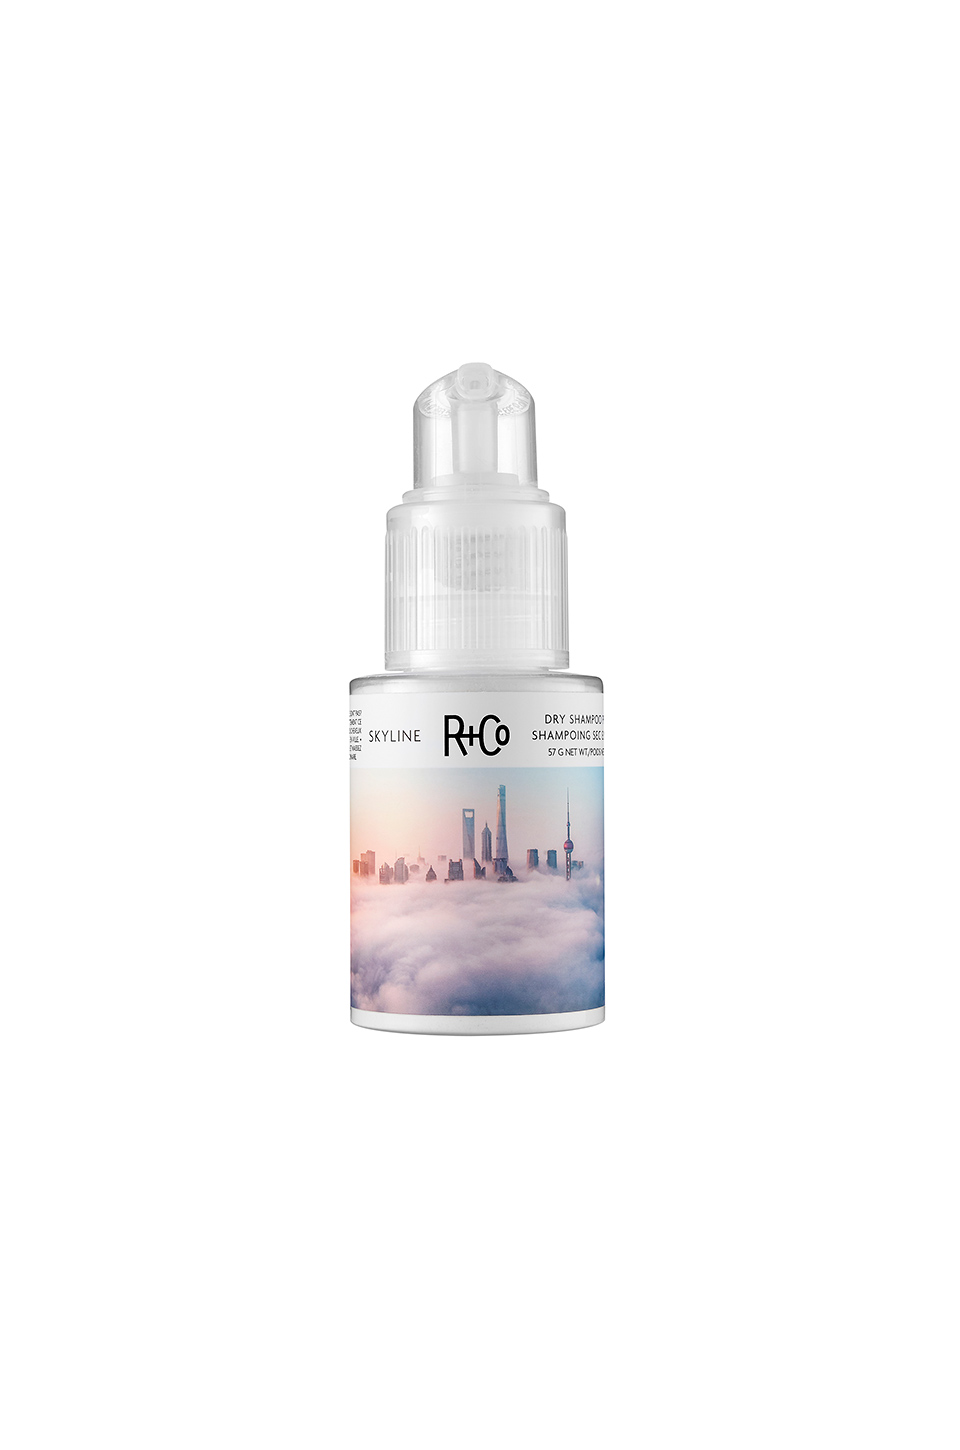 R+Co Skyline Dry Shampoo Powder in